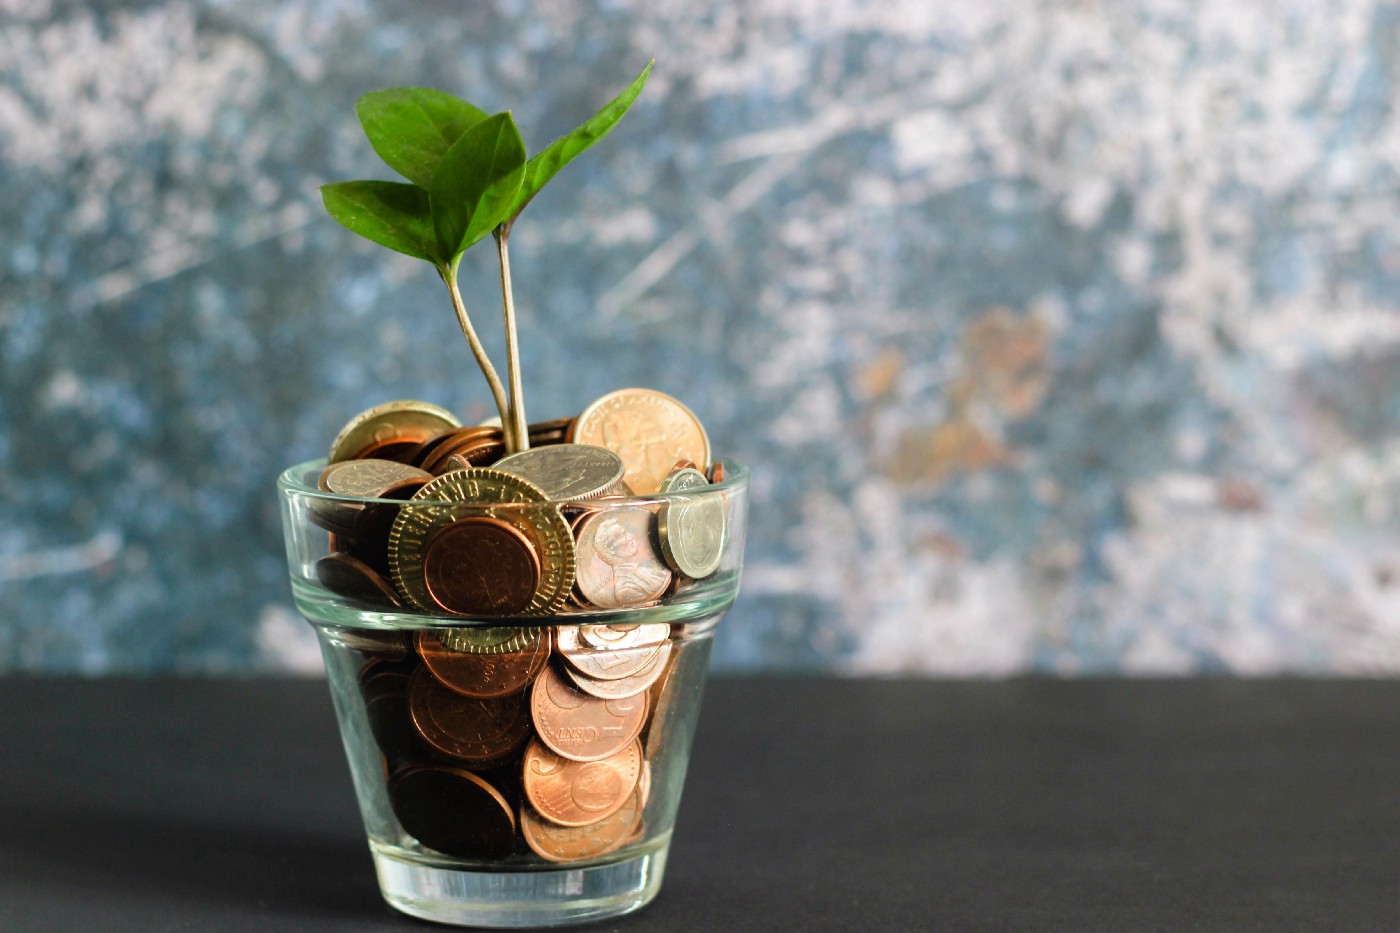 A seedling seemingly growing out of a small glass filled with coins of different currencies.